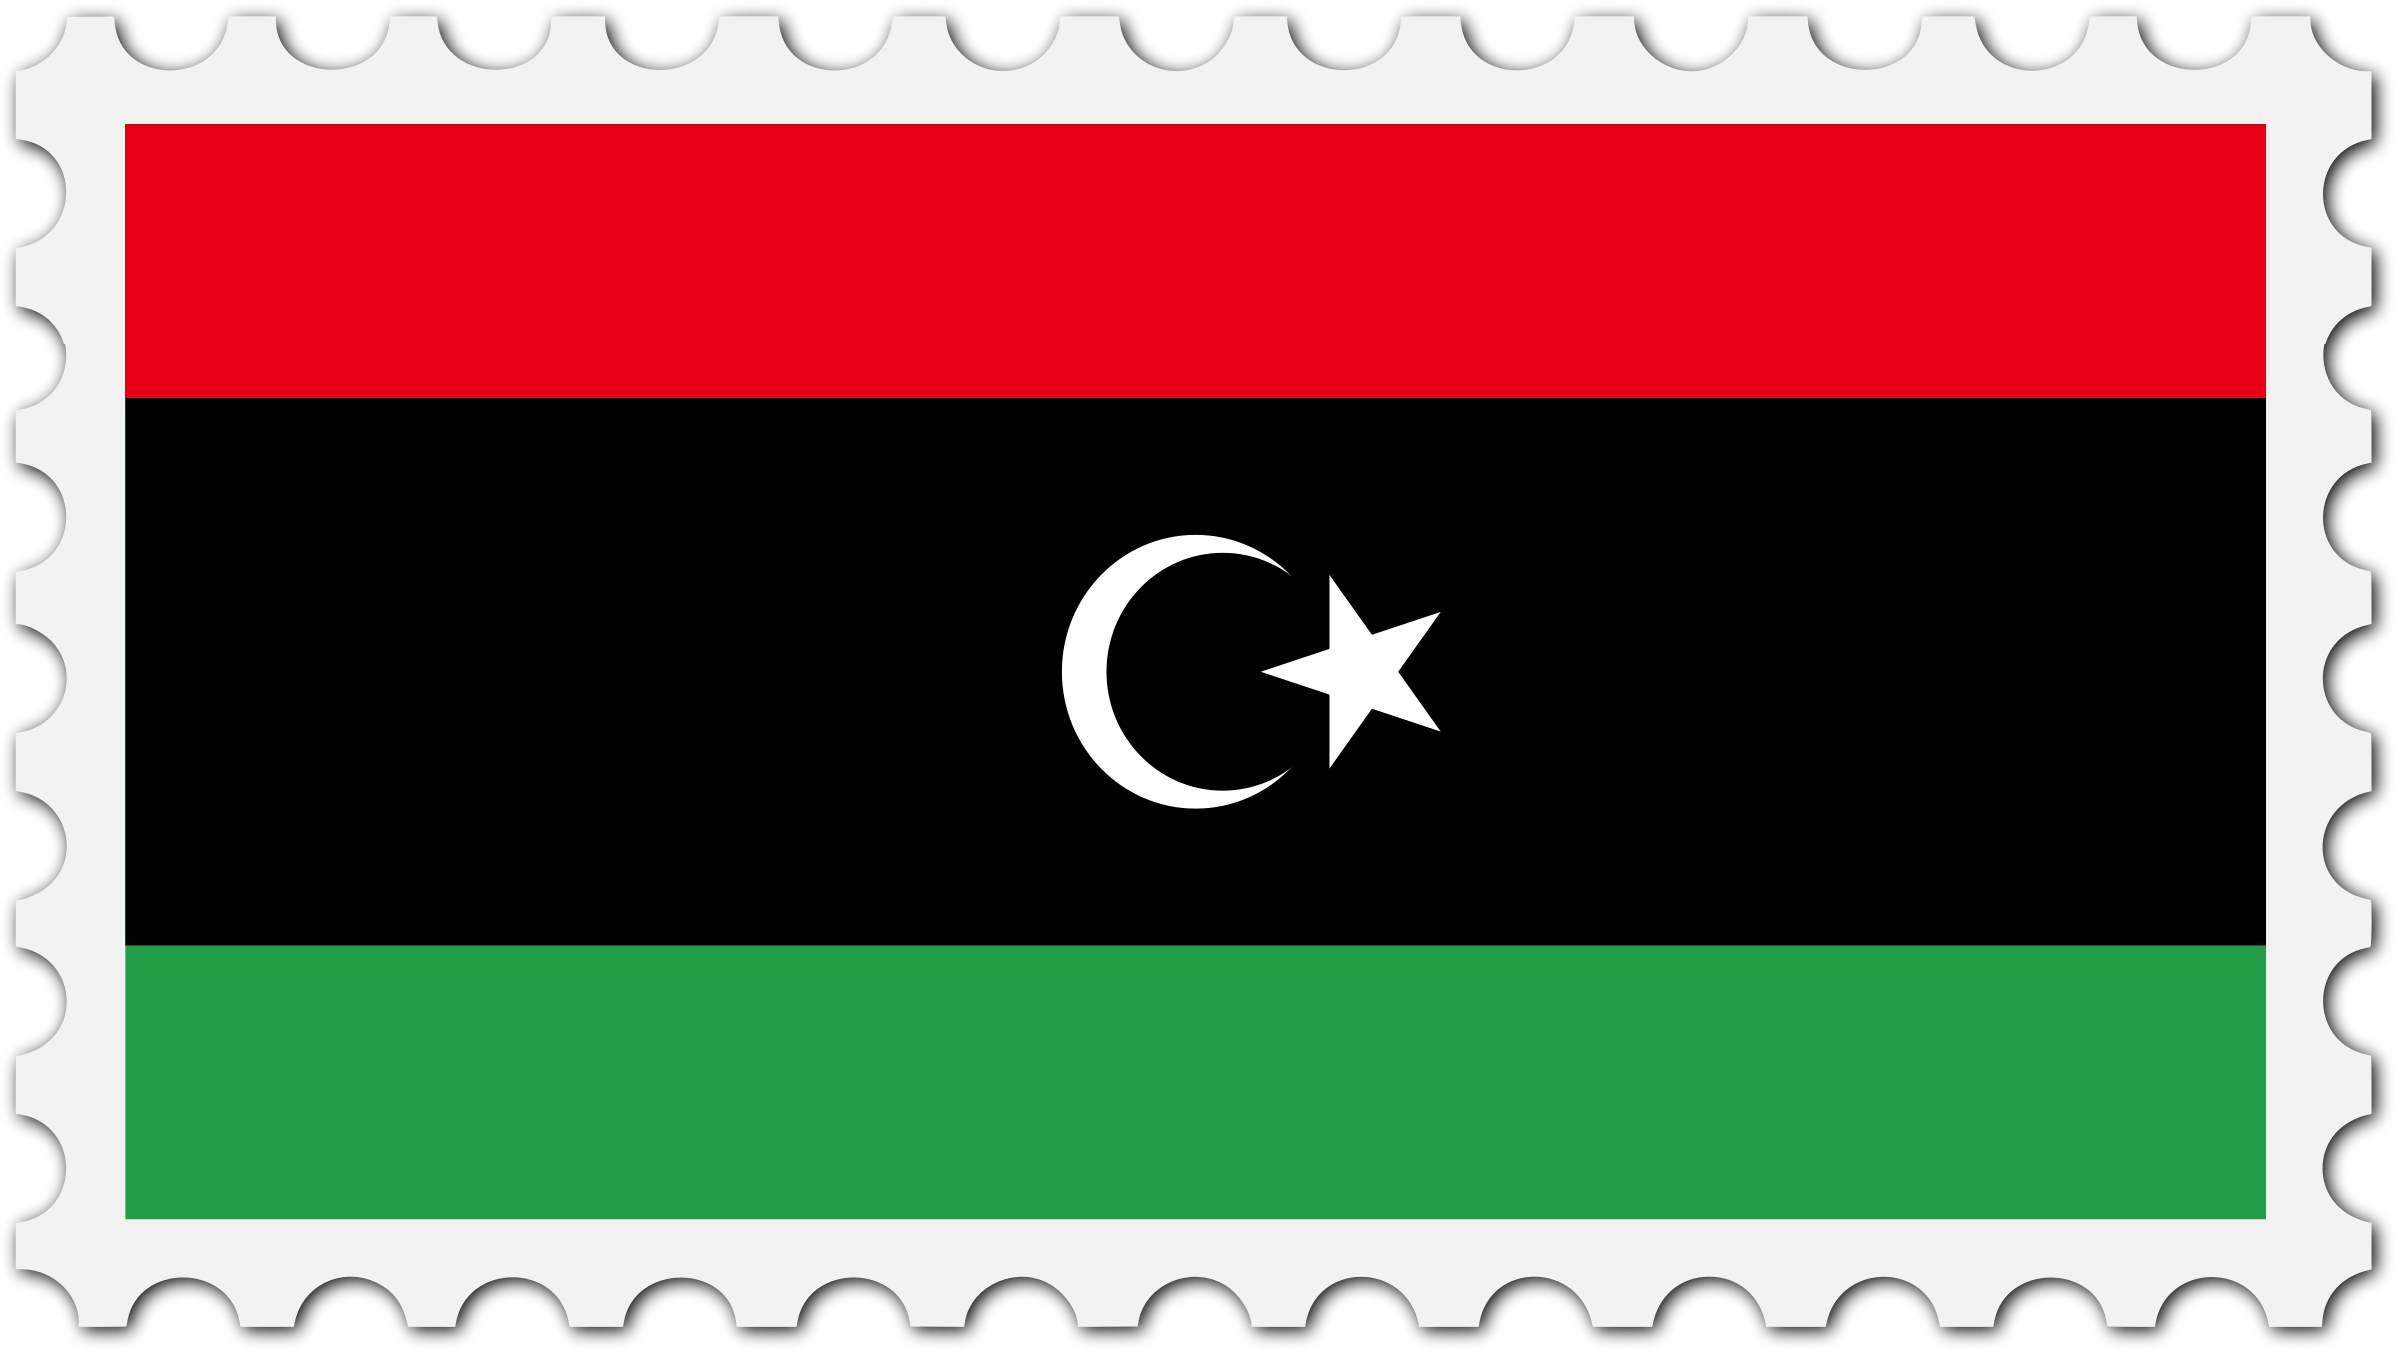 Libya flag stamp by Firkin